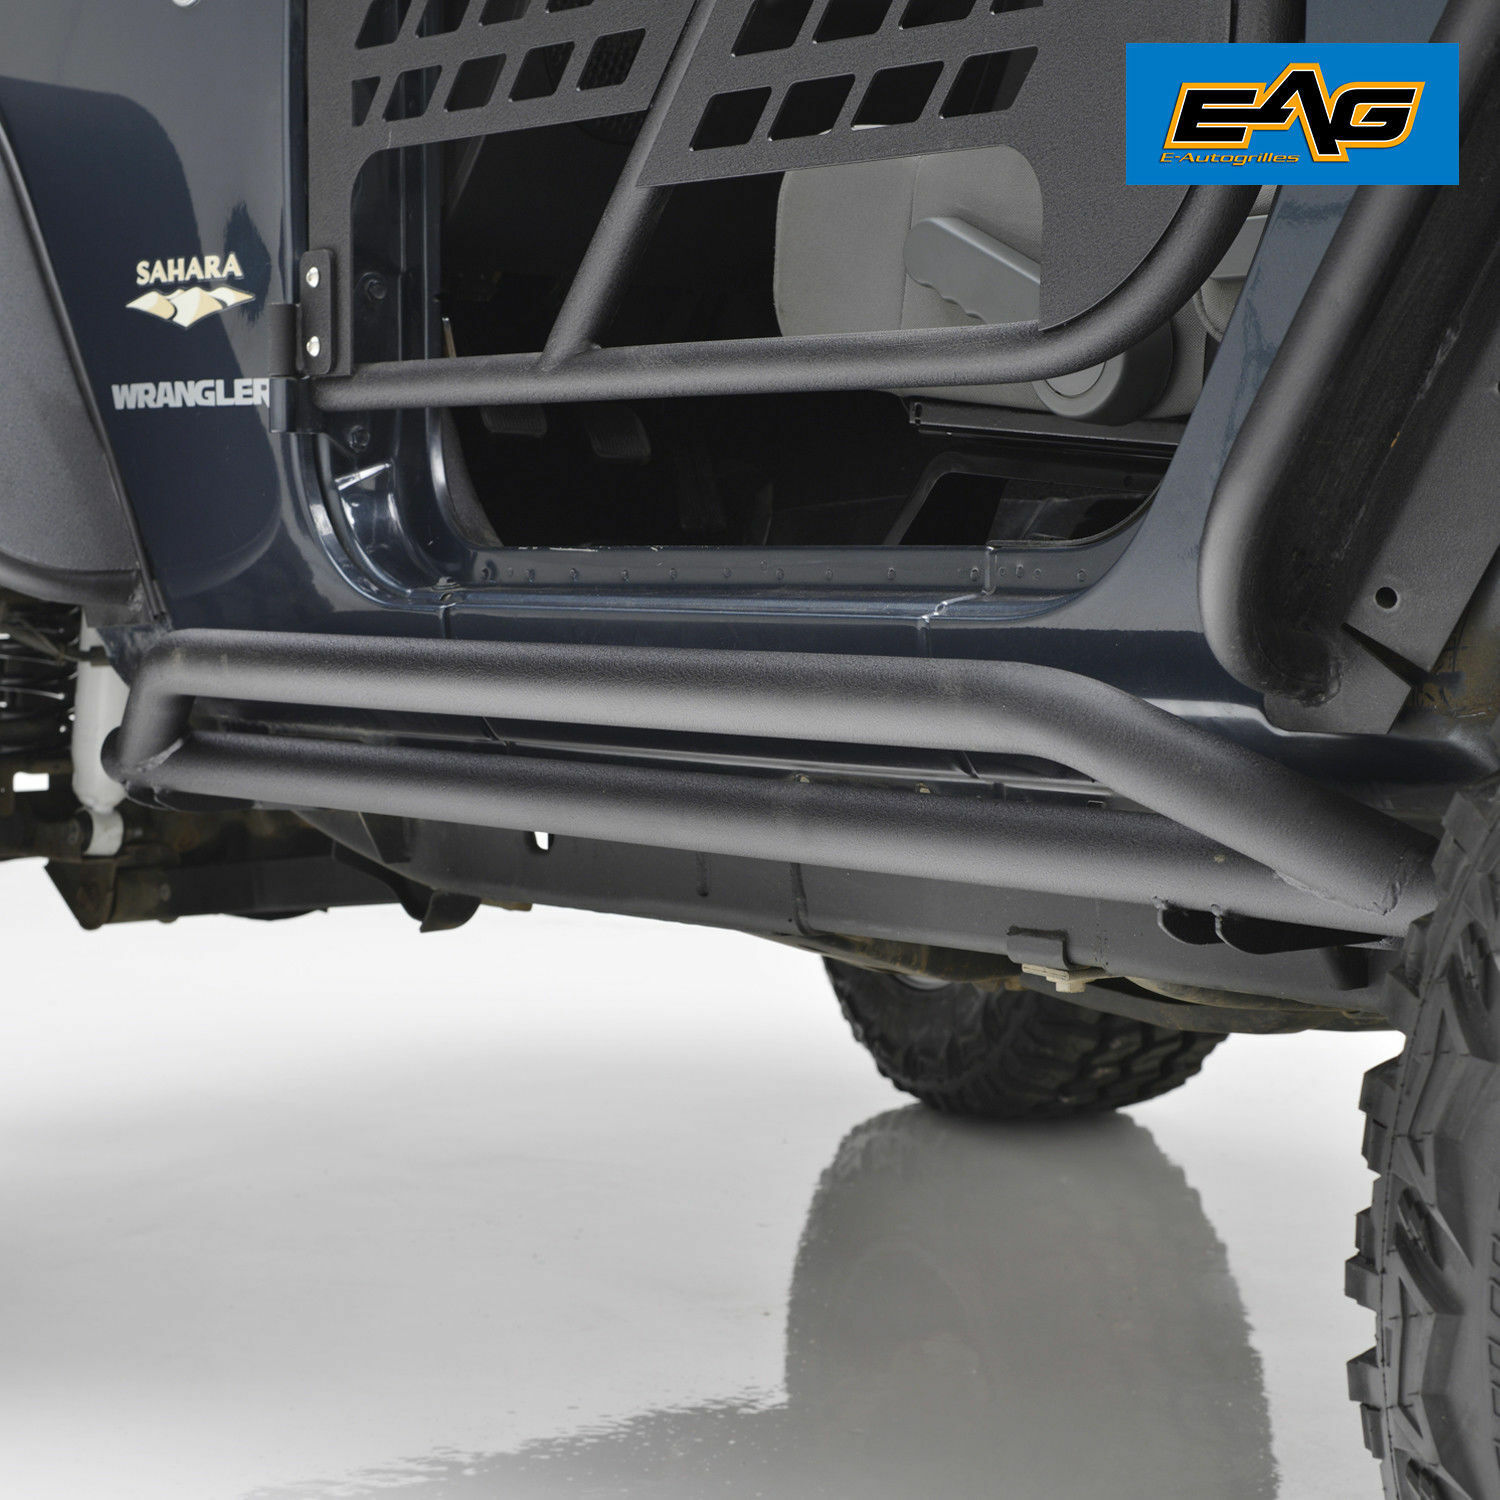 07 18 Jeep Wrangler Jk 2 Door Tubular Rock Slider Nerf Step Bars Running Boards Guard 1 Of 3free Shipping See More